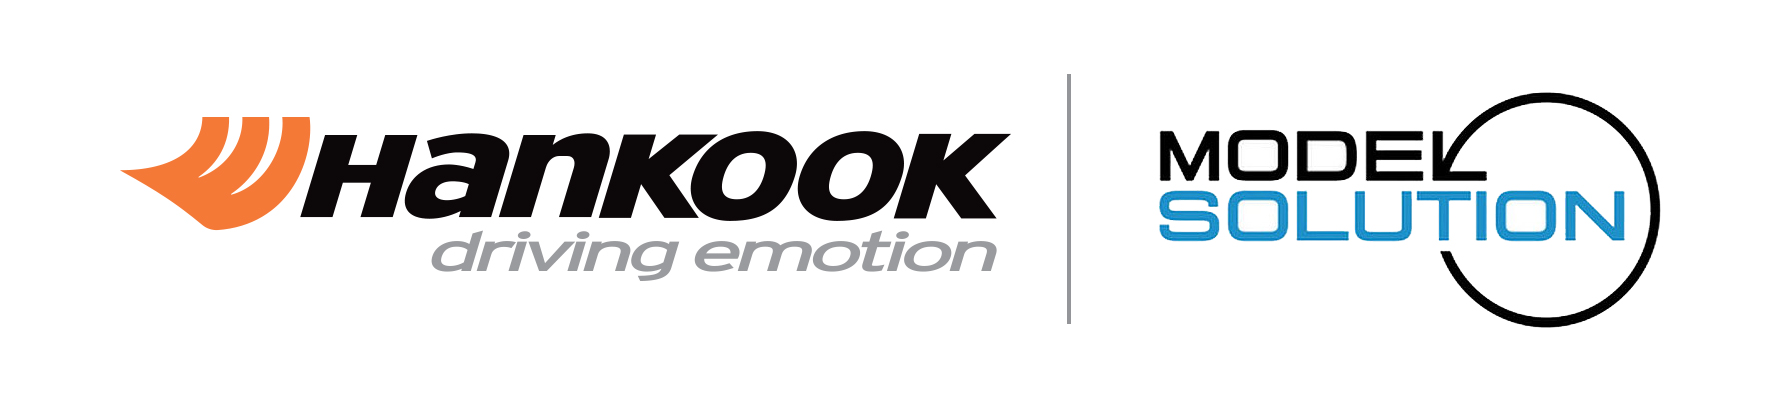 Hankook Tire Akuisisi Model Solution Ltd